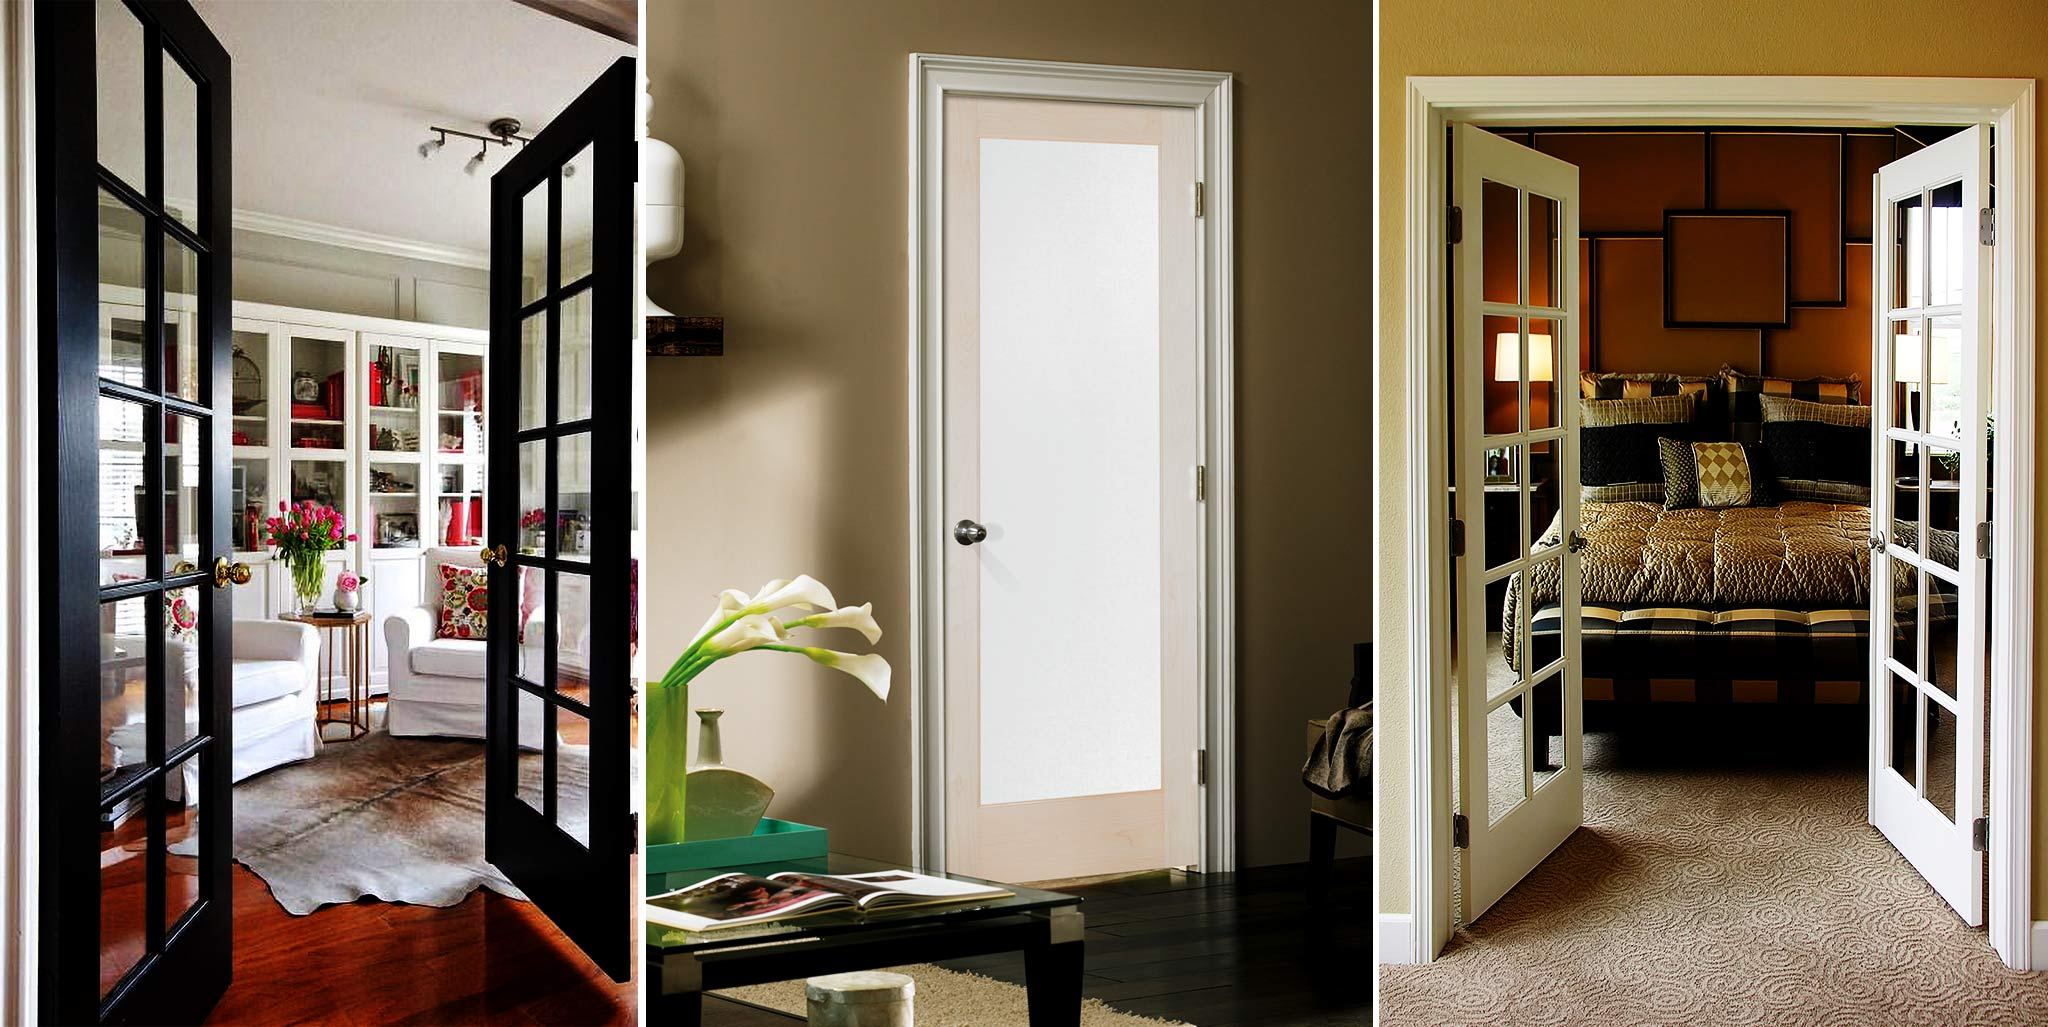 Enjoy the look of new interior doors